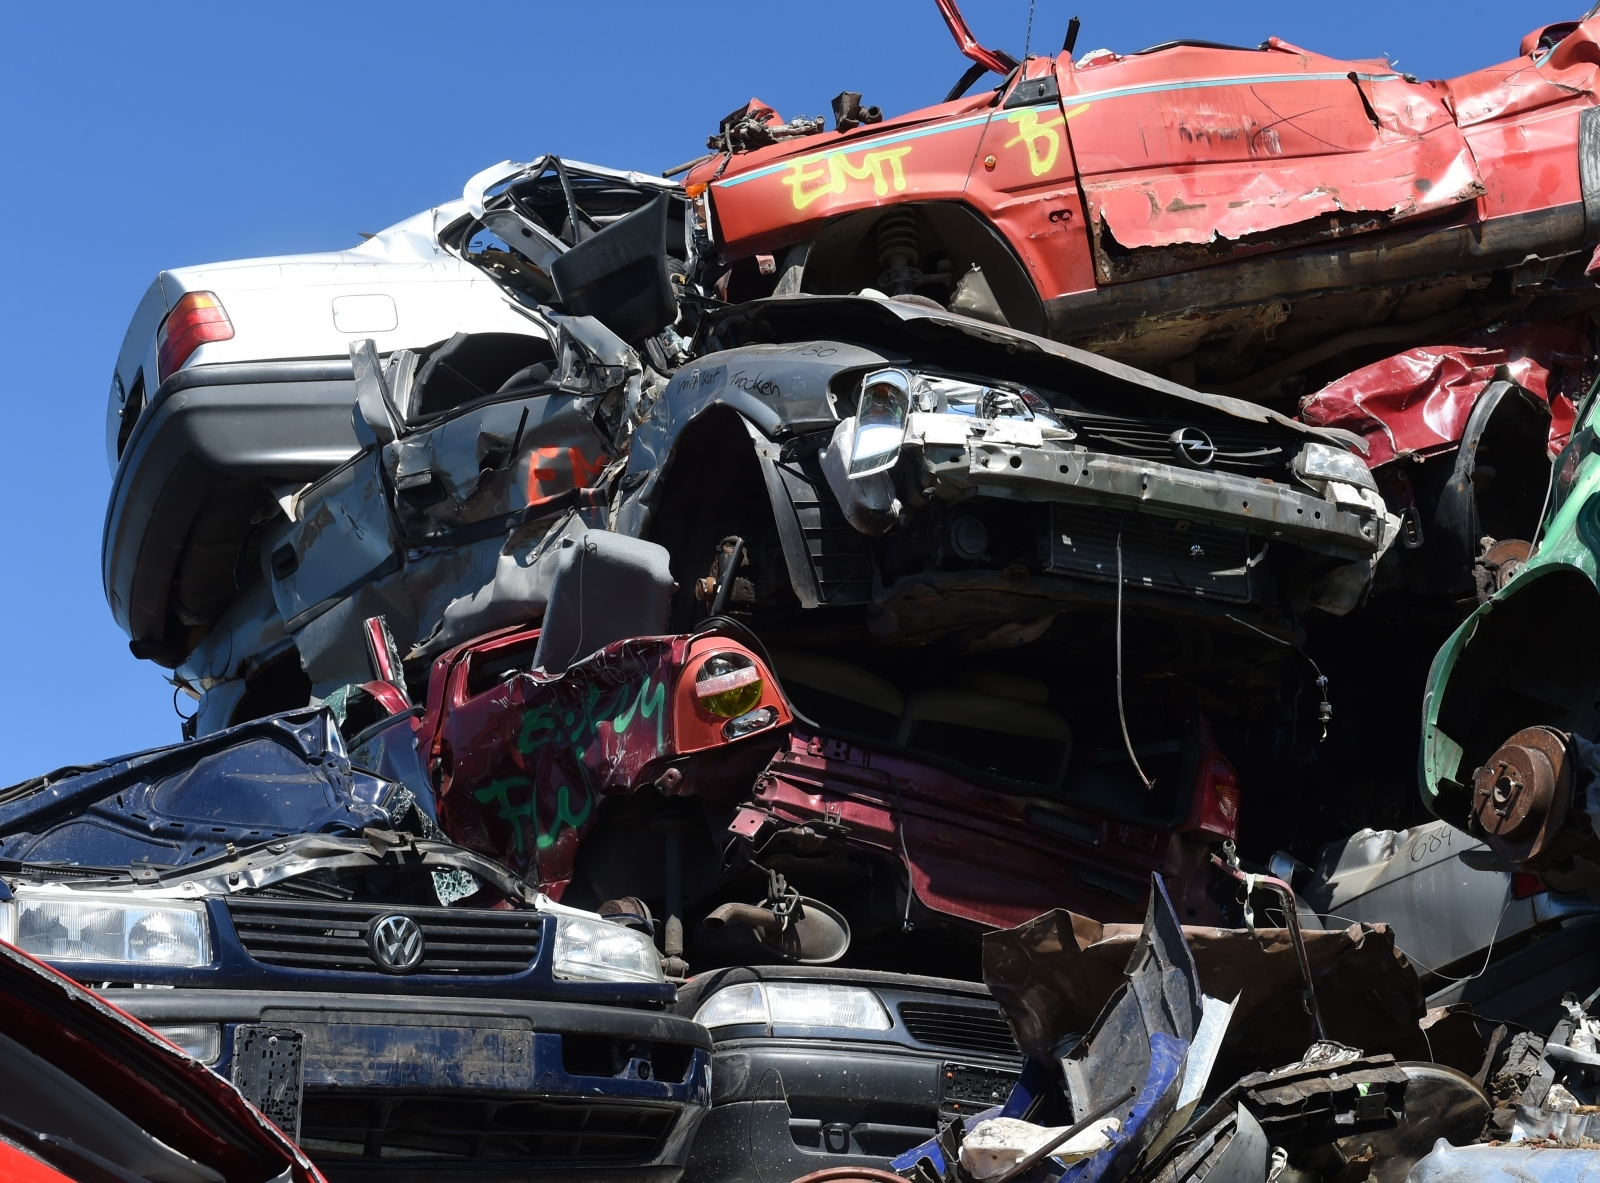 Ford launches £2,000 car scrappage scheme